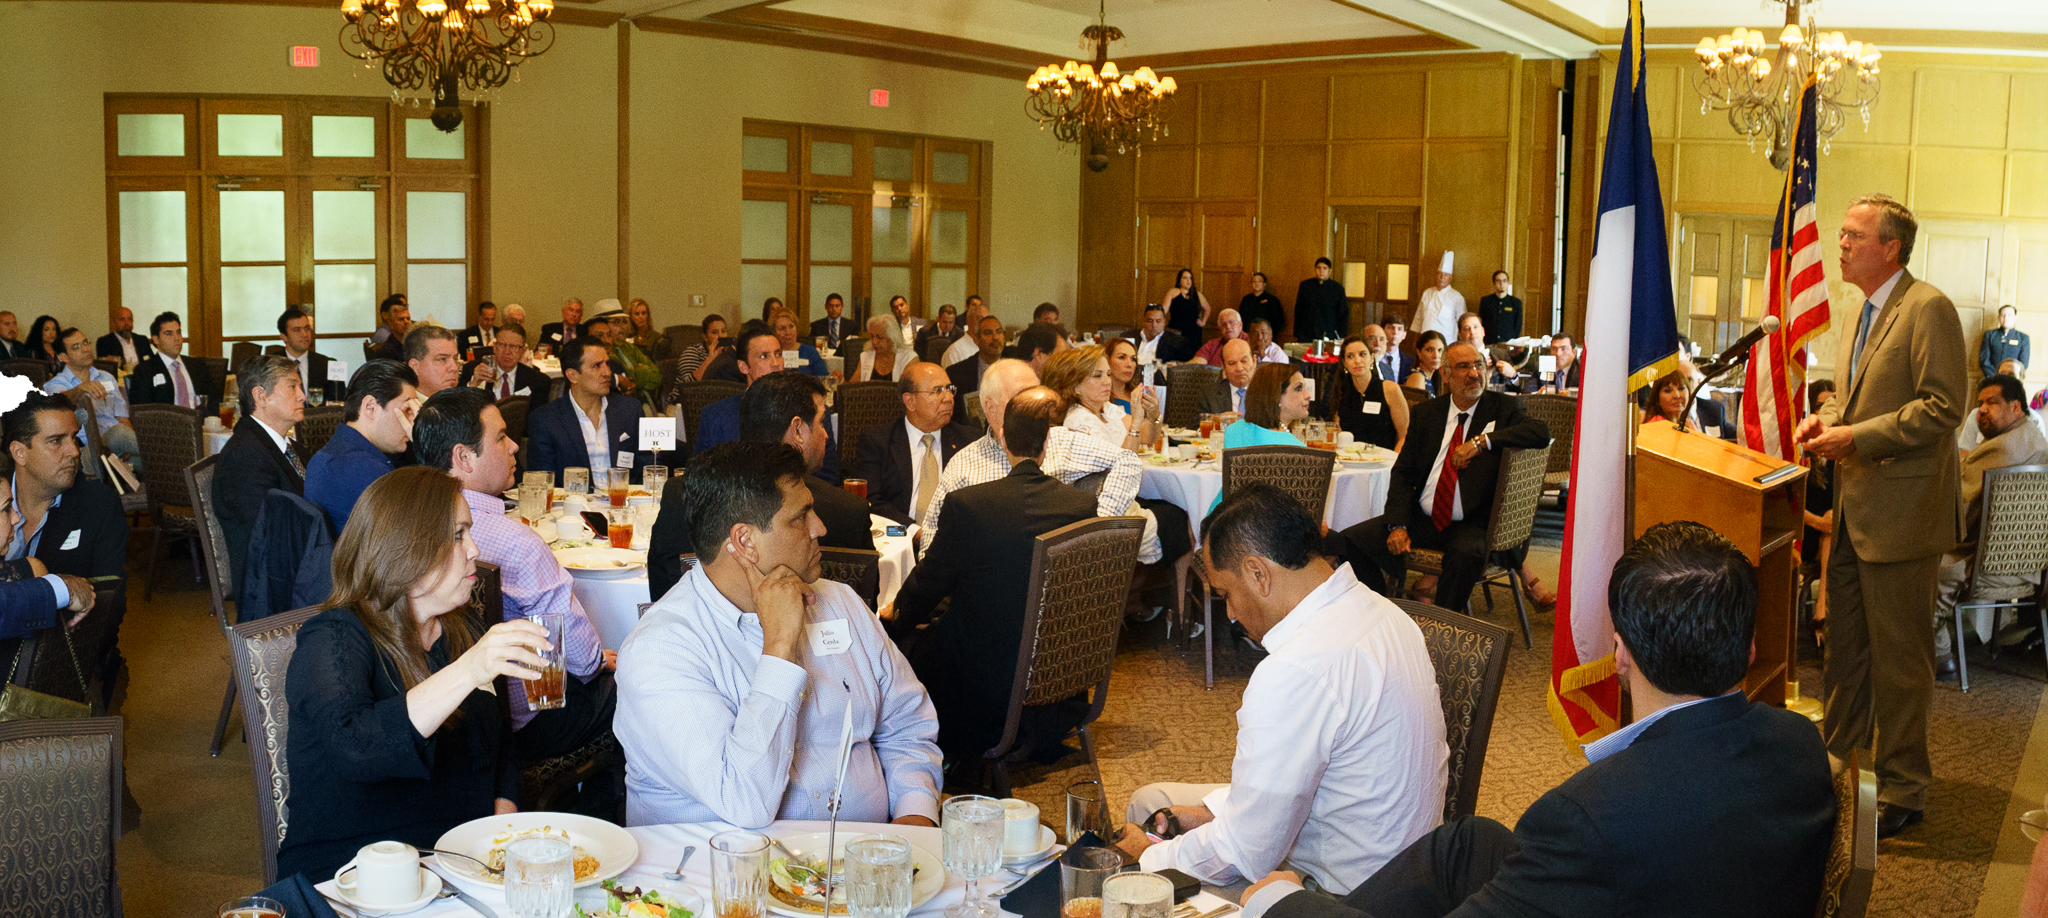 Governor Jeb Bush speaks with supporters at a breakfast in McAllen, TX in August 2015.